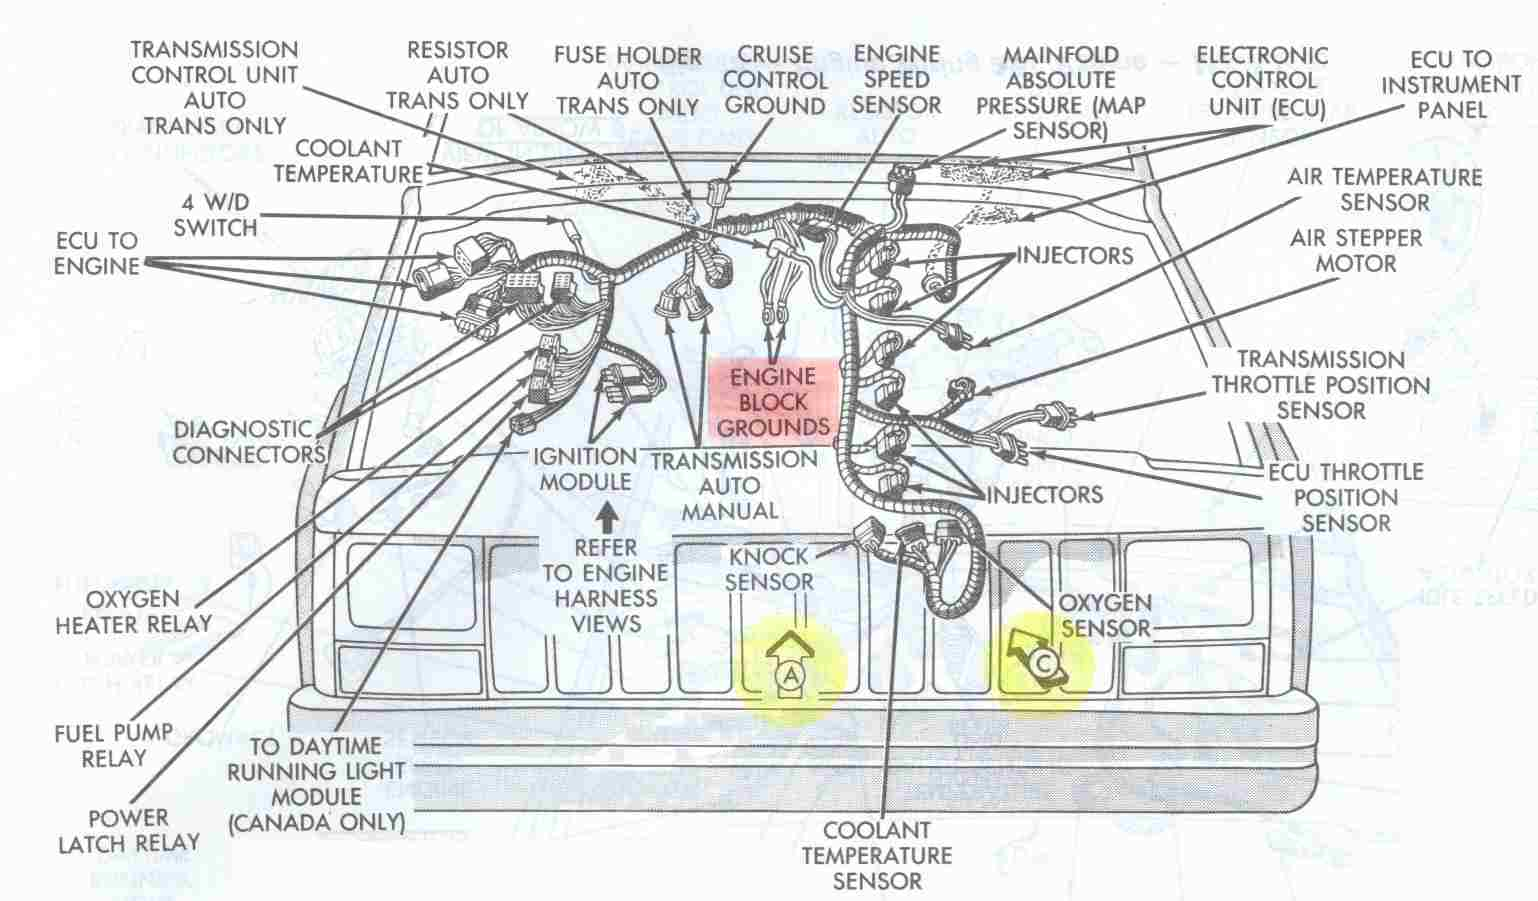 Electrical_Engine_Ground_Points_Overview jeep cherokee electrical diagnosing erratic behavior of engine wiring diagram for 1998 jeep grand cherokee at nearapp.co